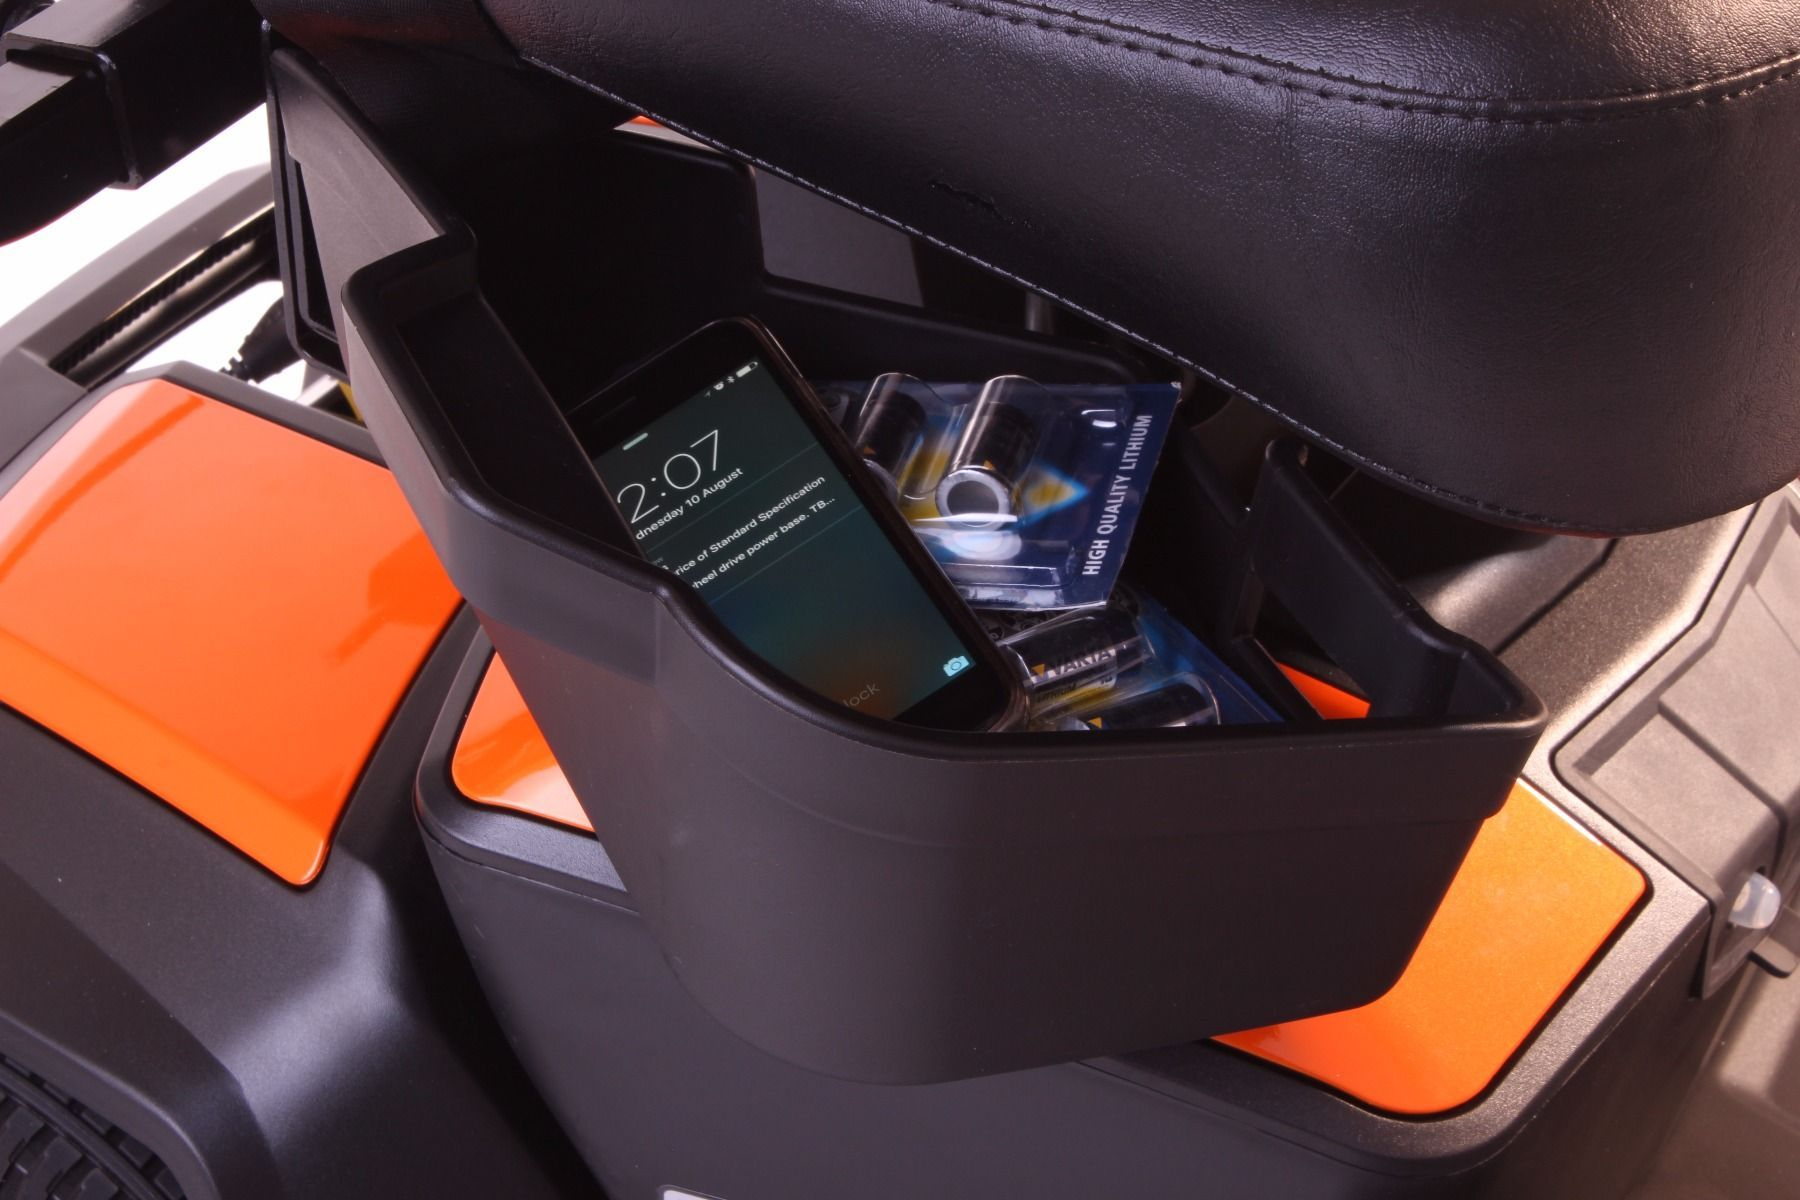 Pride Mobility Go-Chair storage caddy for small items